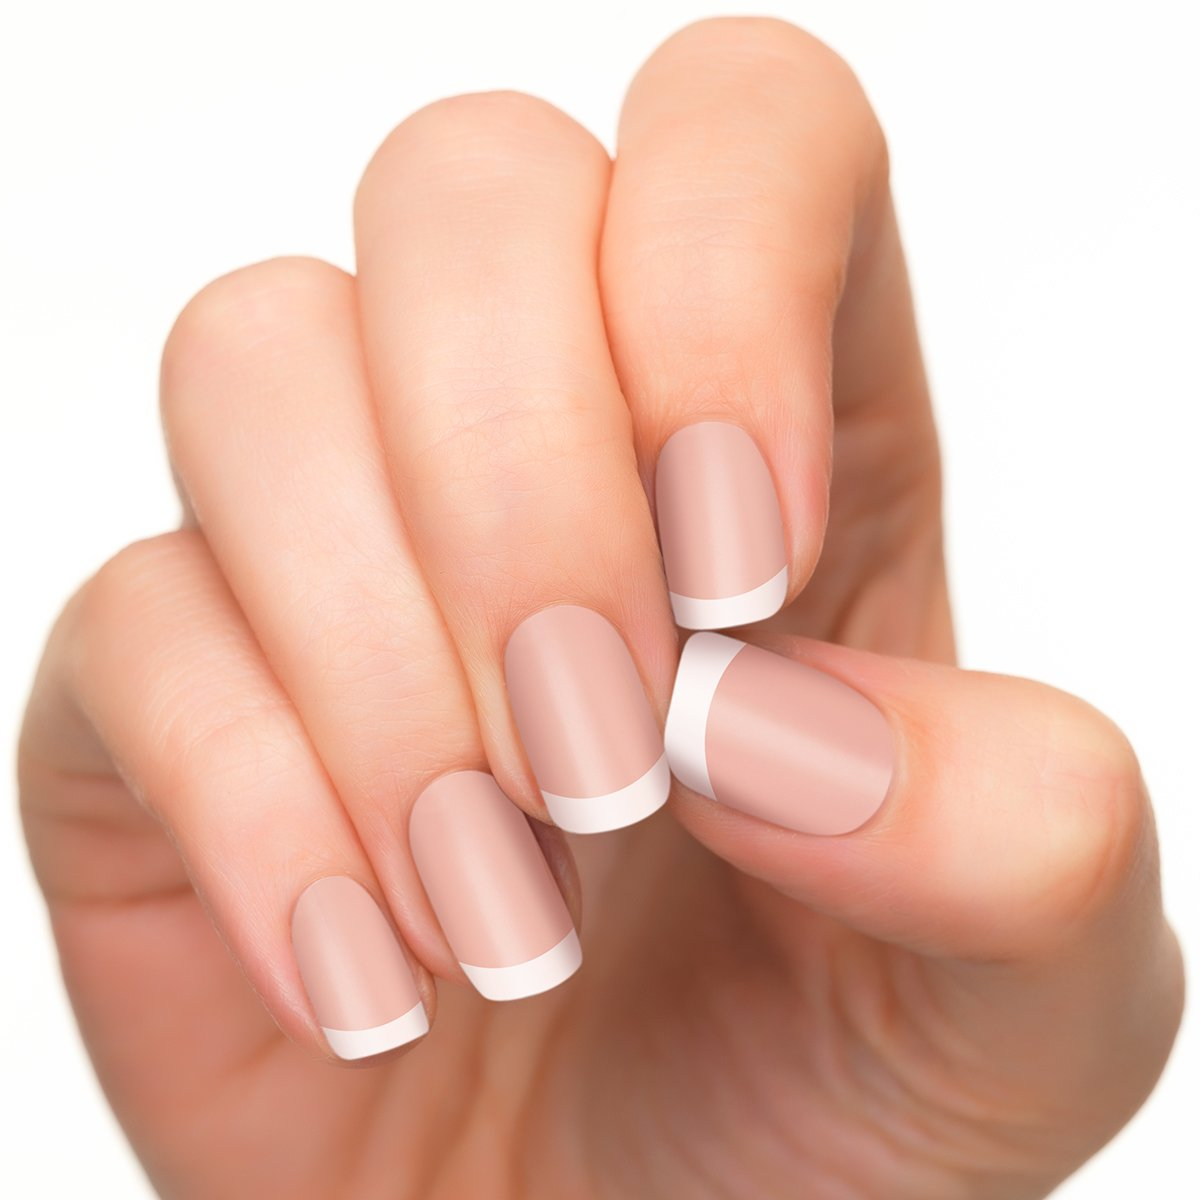 Amazon.com : Incoco Nail Polish Strips, French Manicure, White Cloud ...